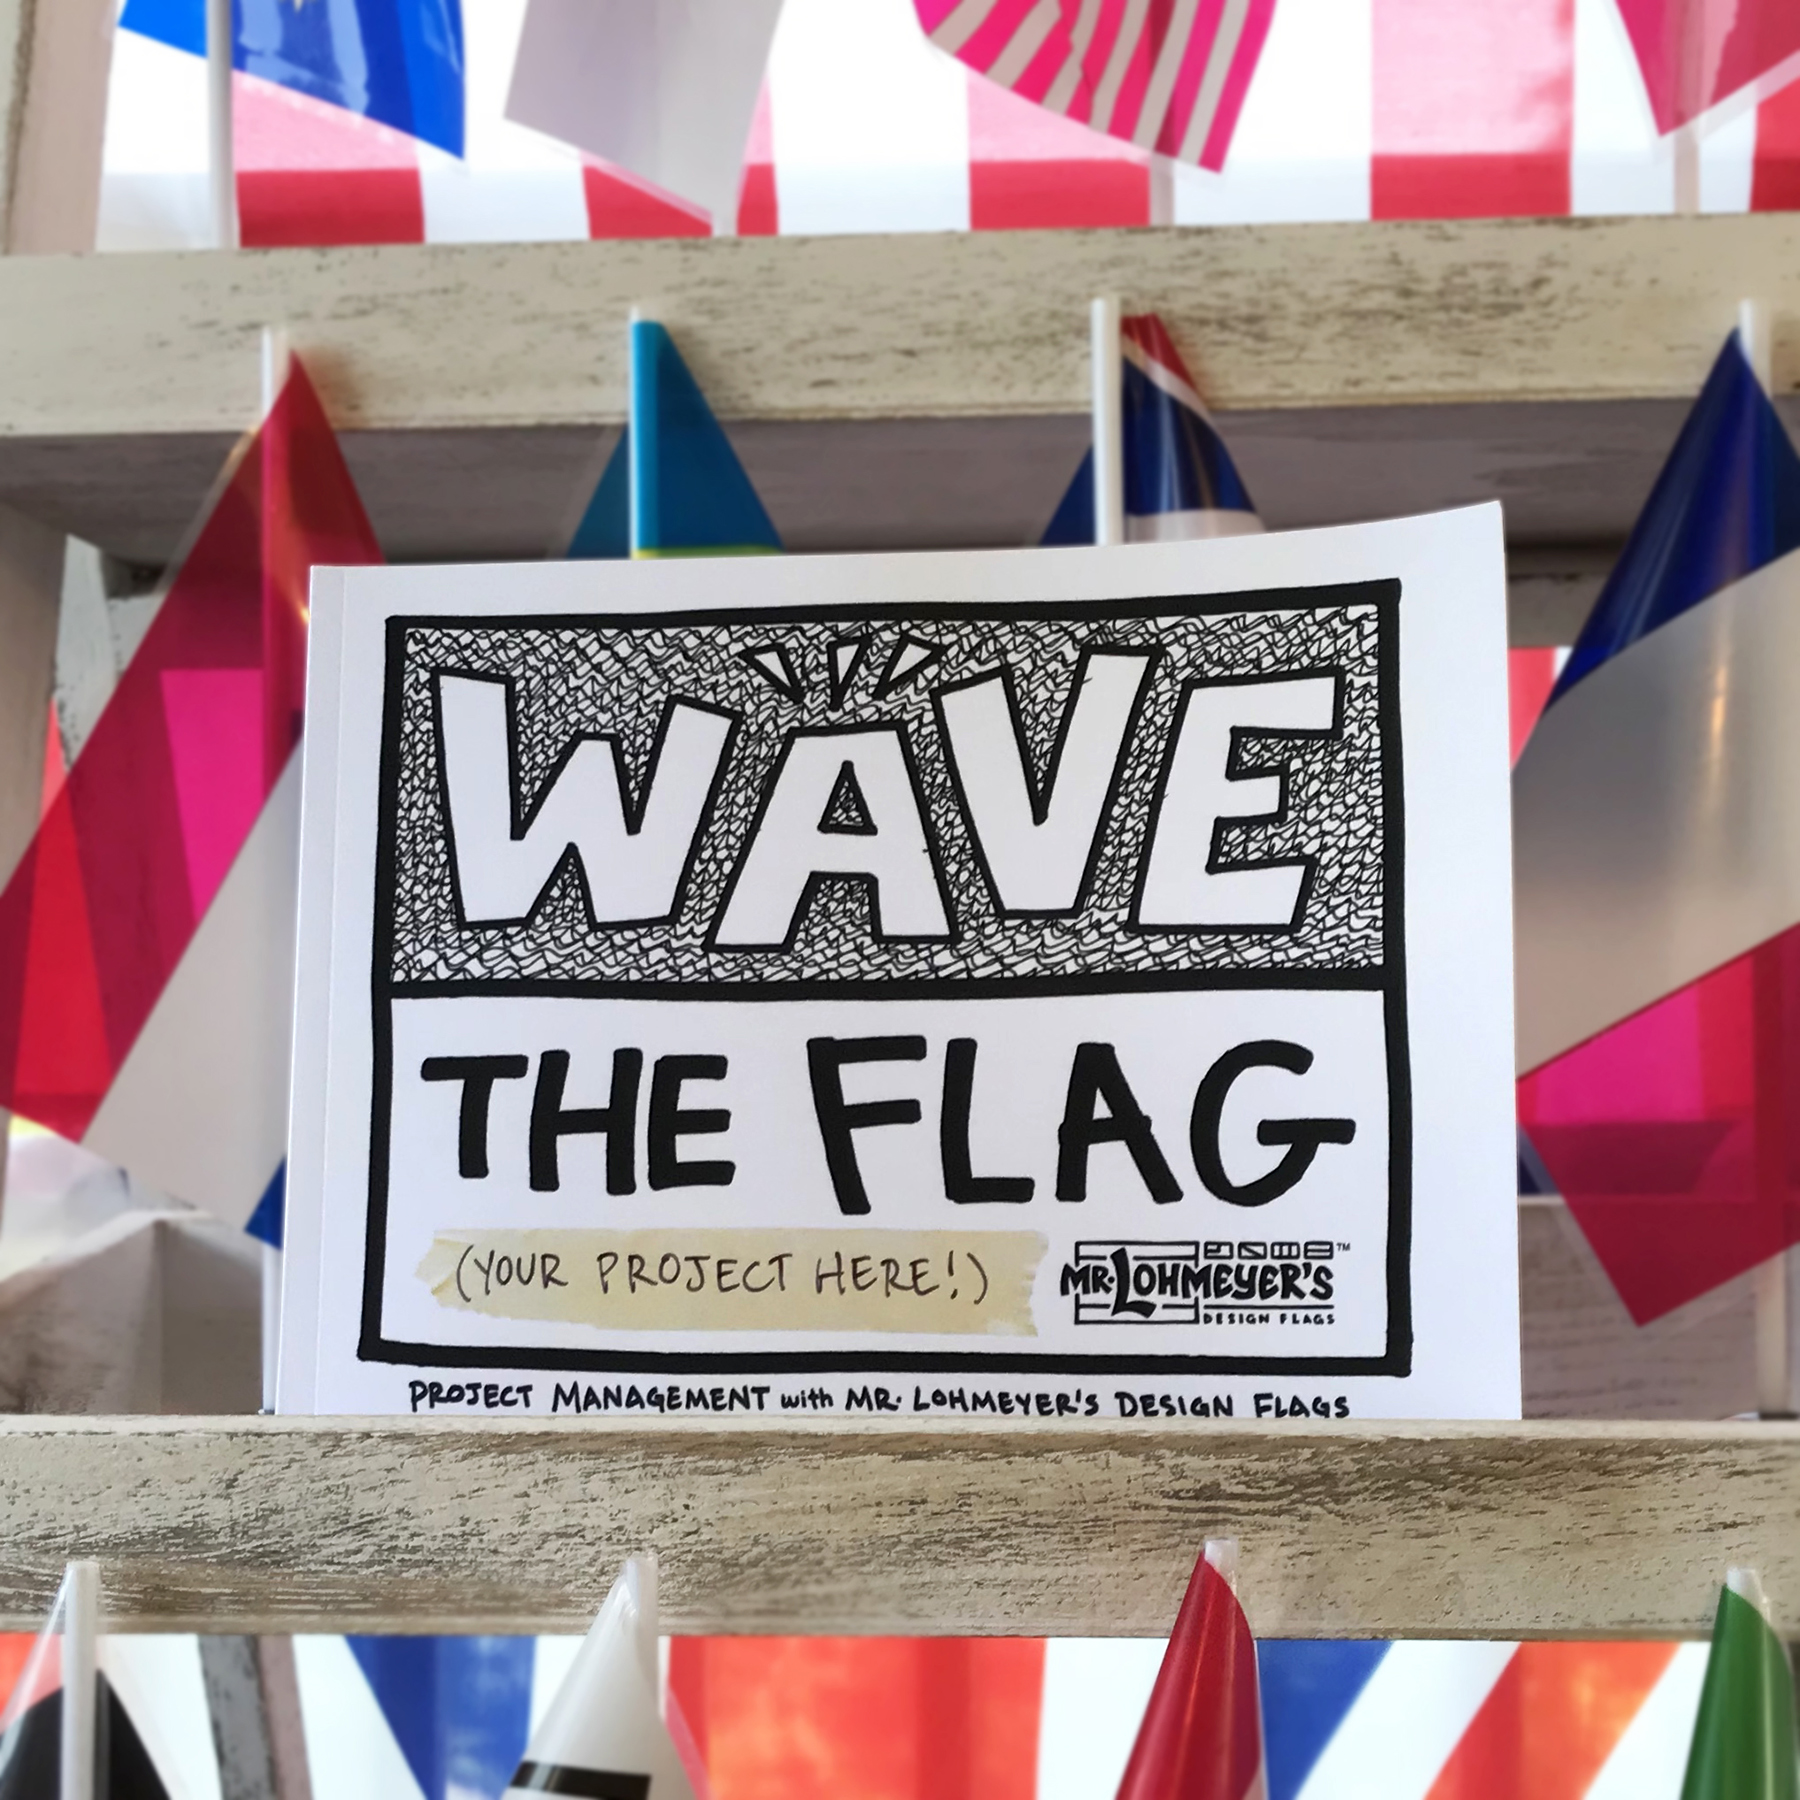 WAVE THE FLAG Project Management with Mr. Lohmeyer